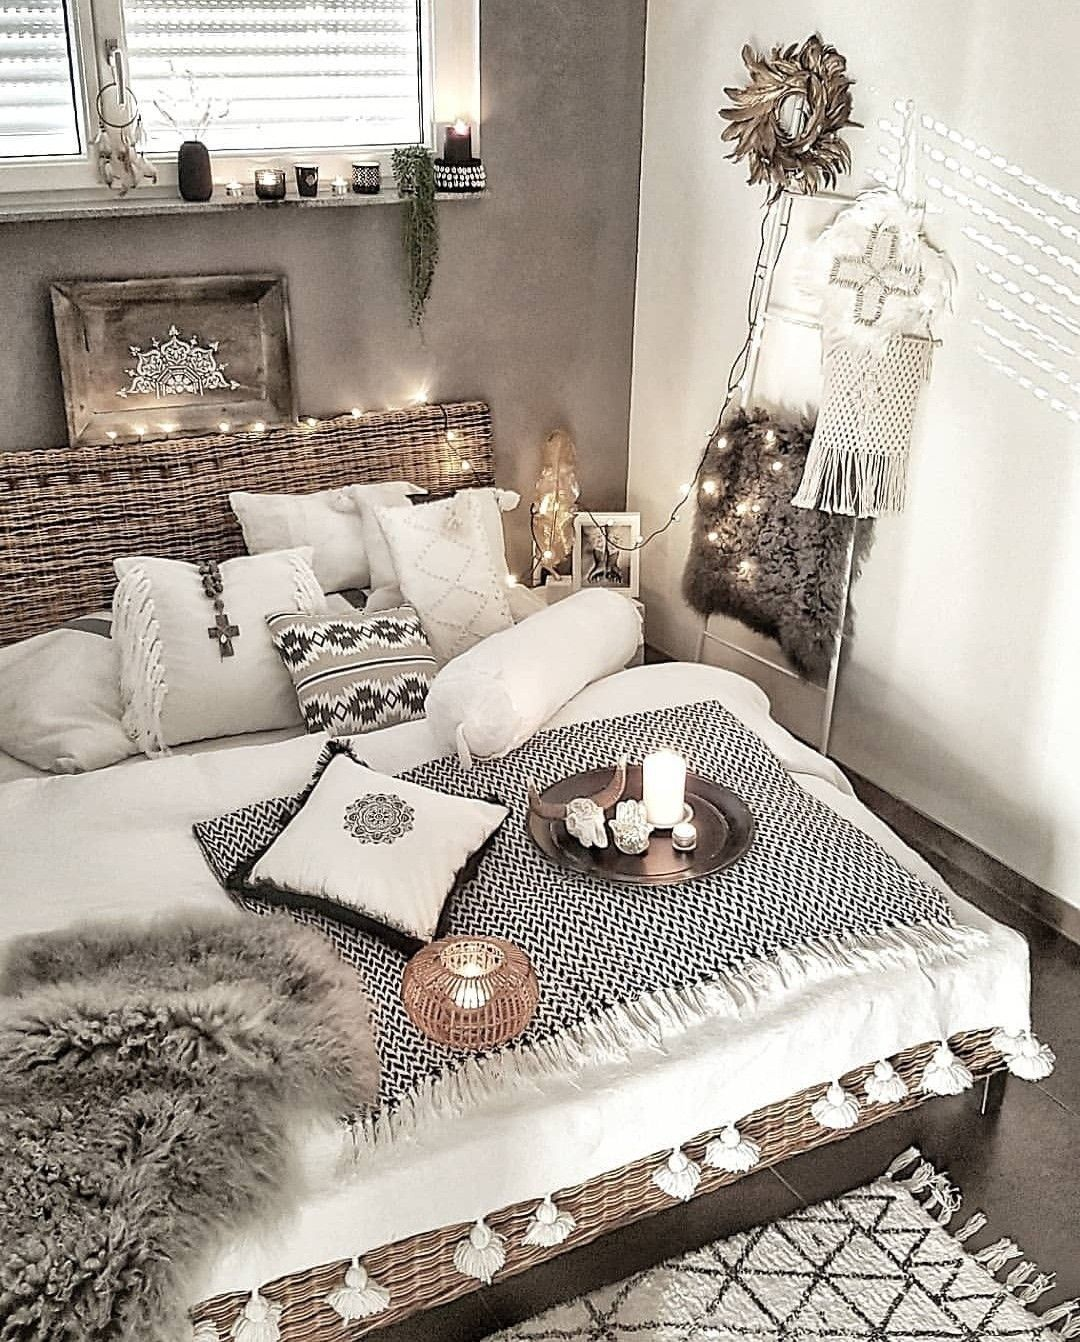 Love the hygge in this one! Probably slightly more boho than my actual style.